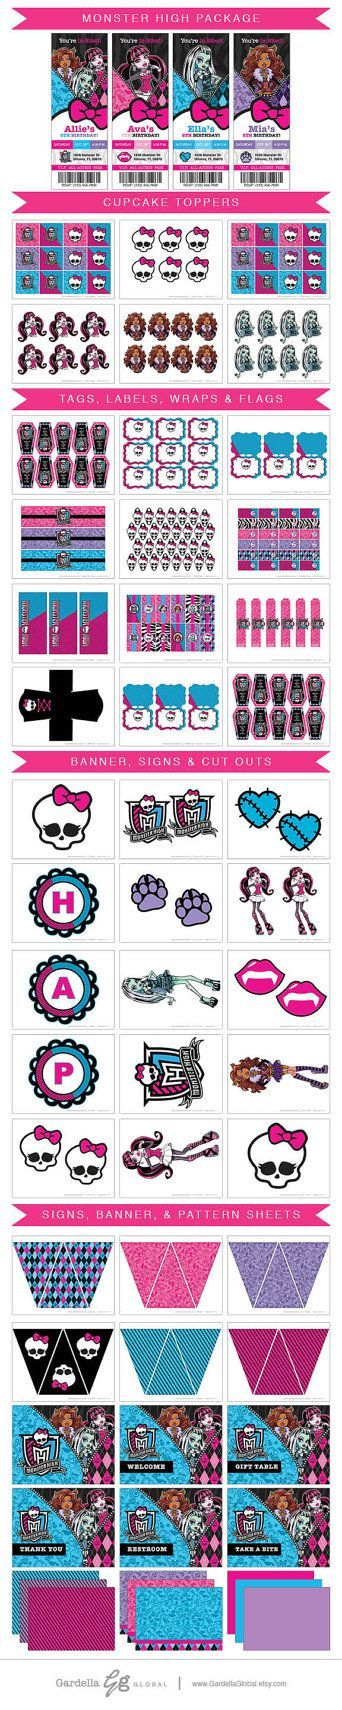 List Of Pinterest Ever After High Party Ideas Cake Cupcake Toppers